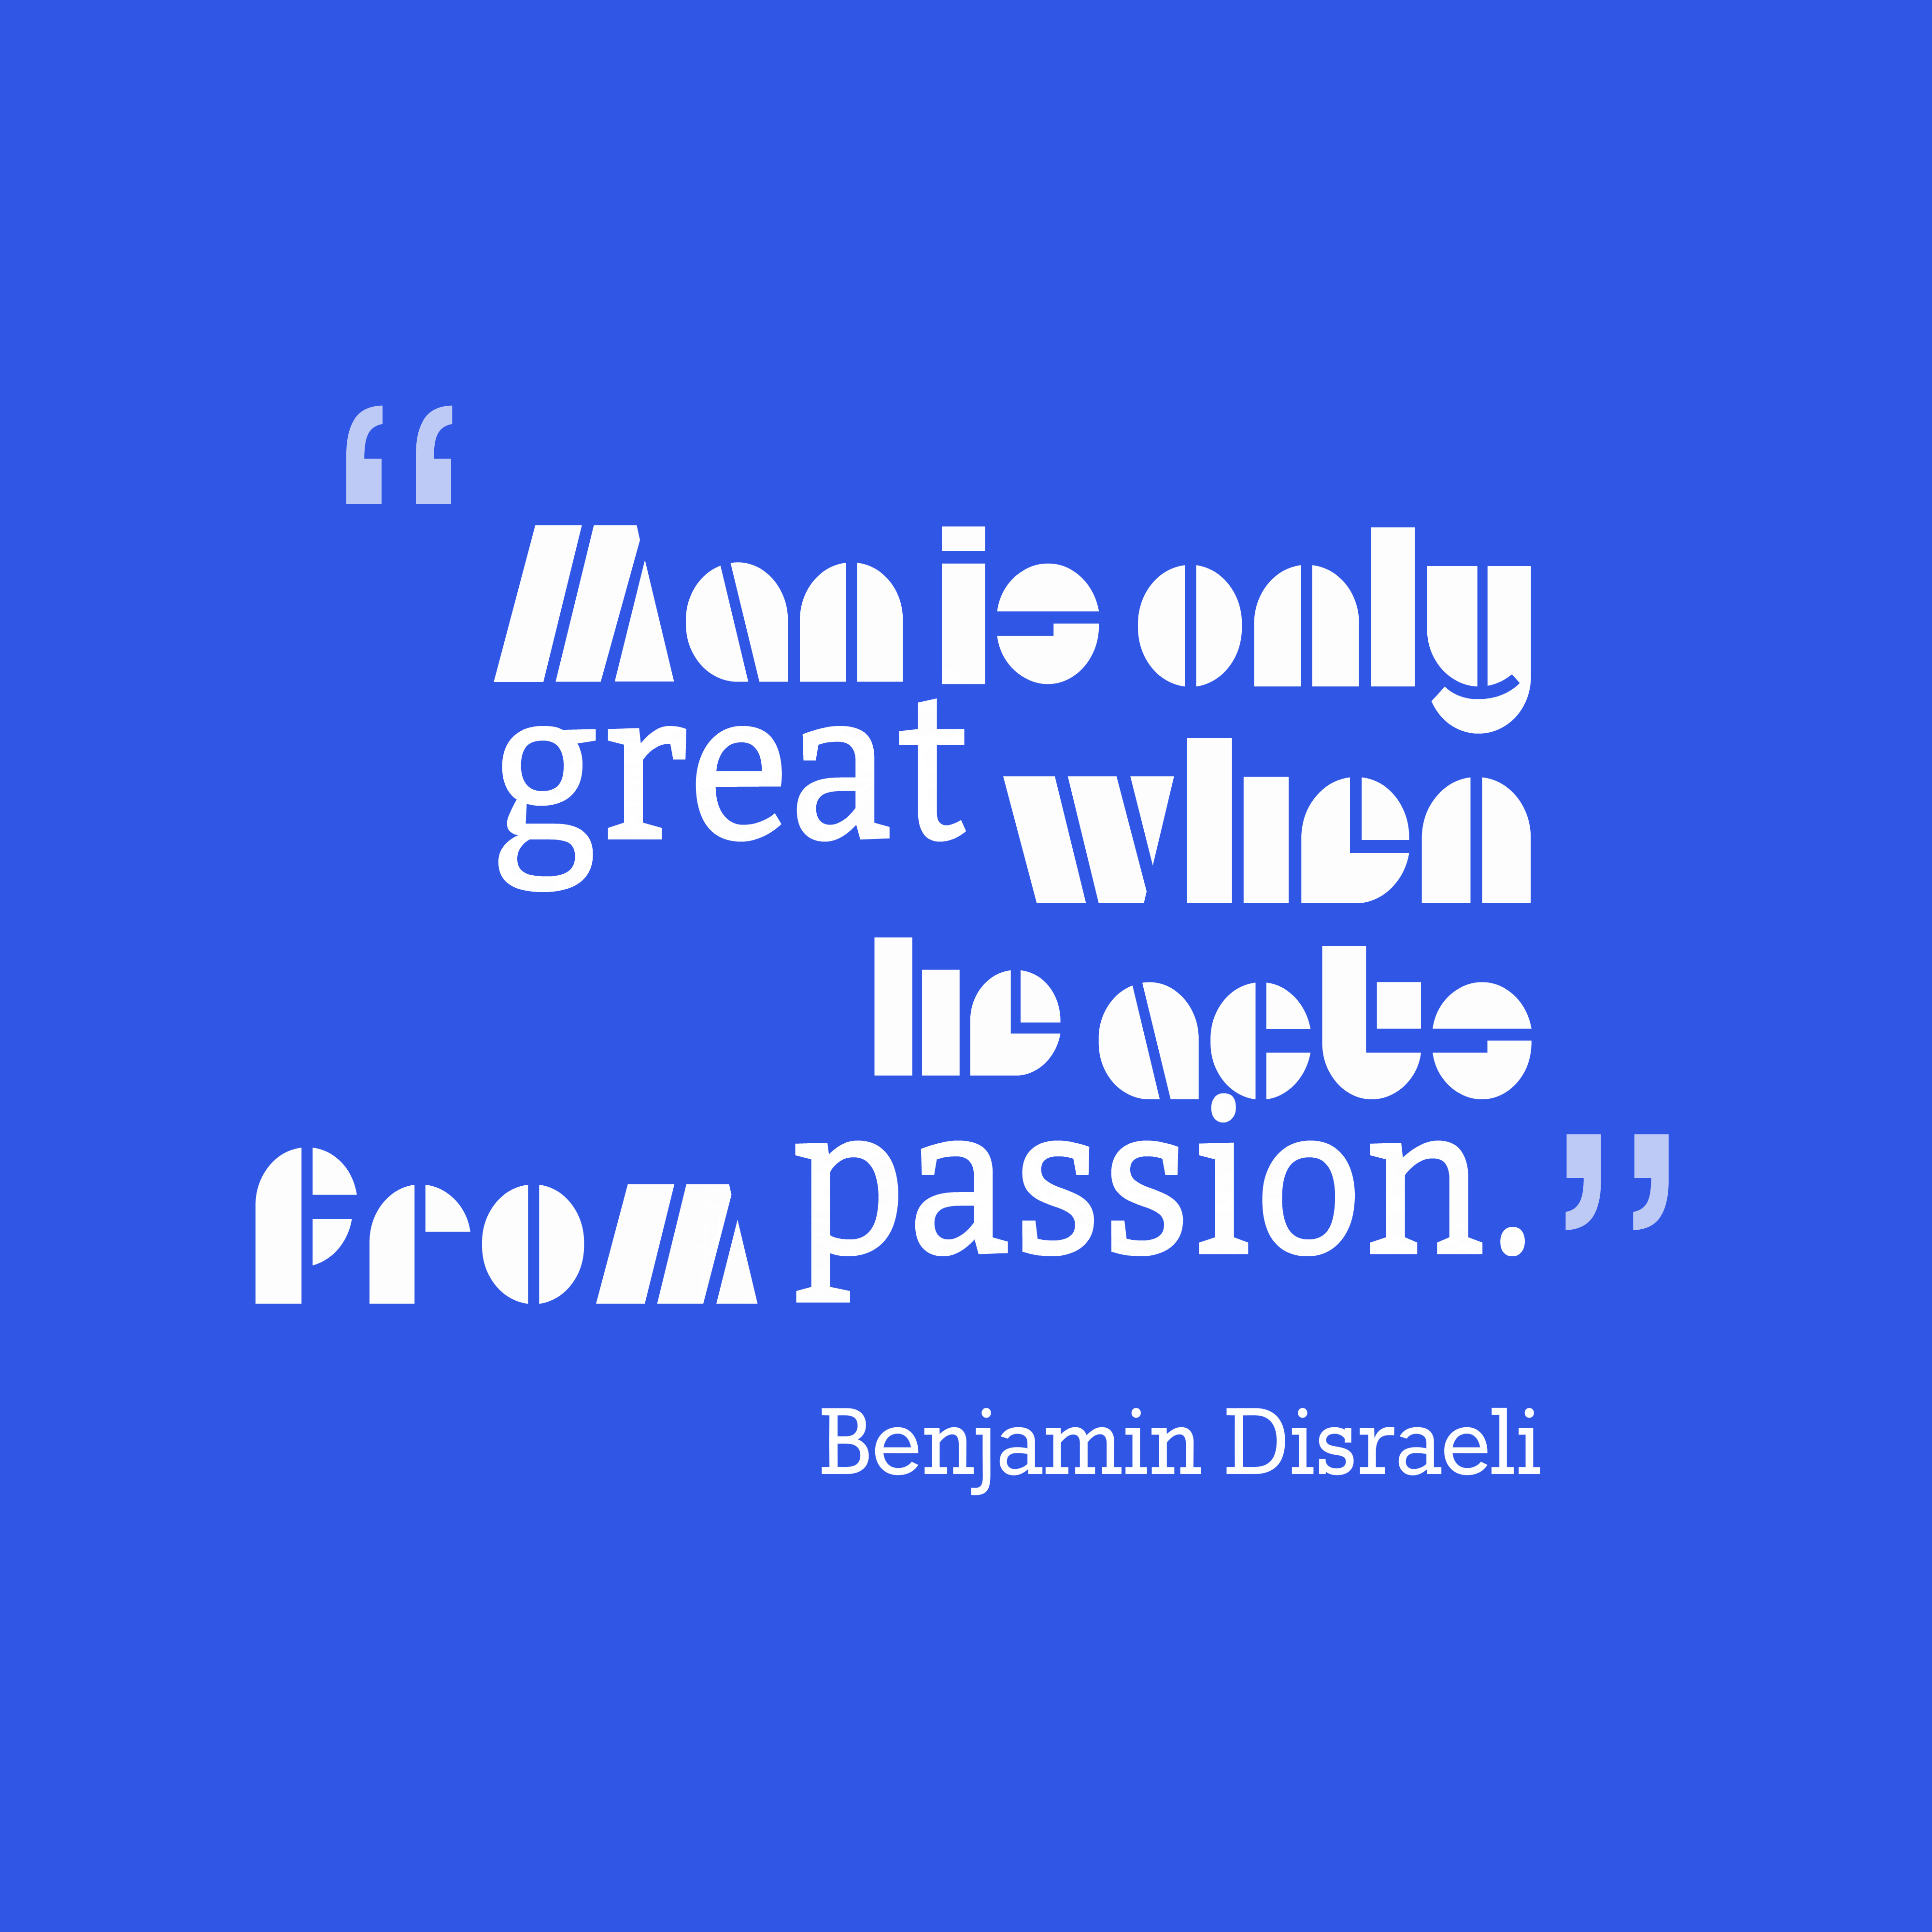 Quotes image of Man is only great when he acts from passion.